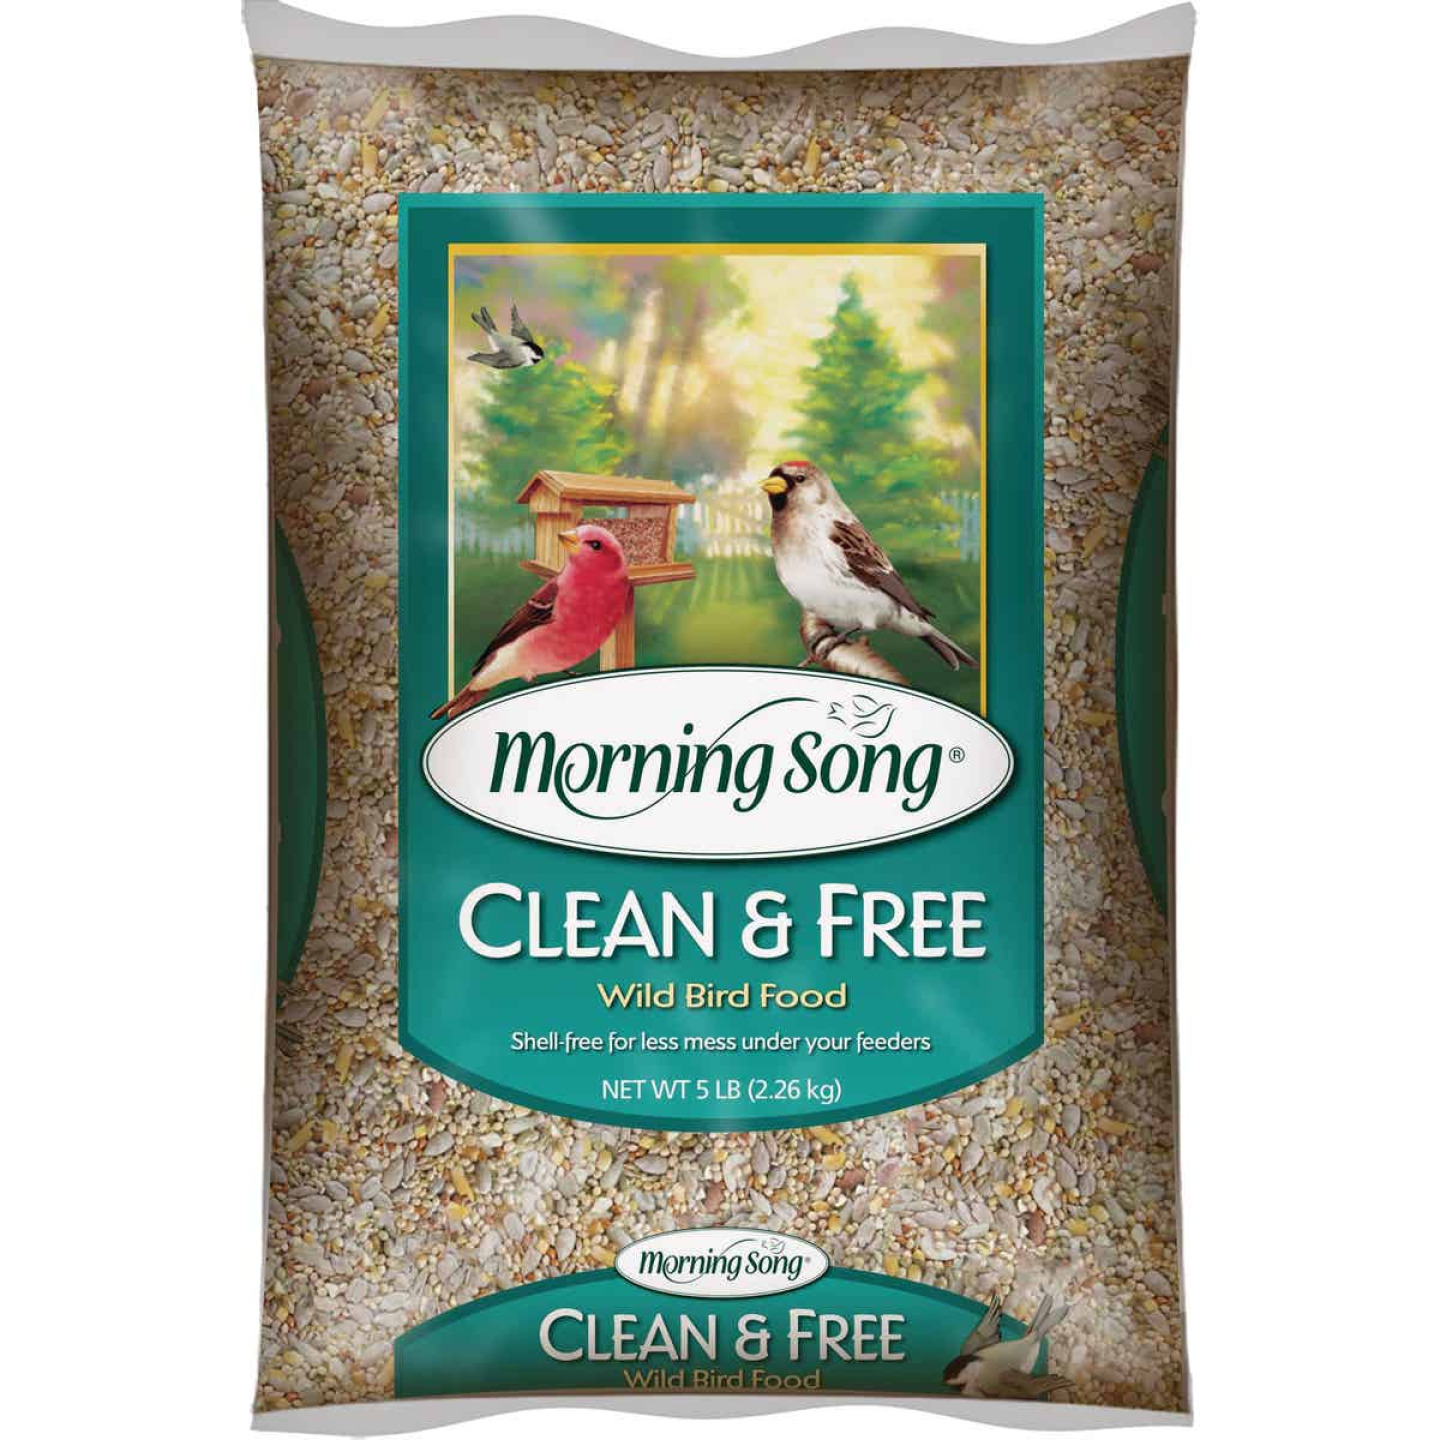 Morning Song 5 Lb. Clean & Free Shell Free Wild Bird Seed Image 1